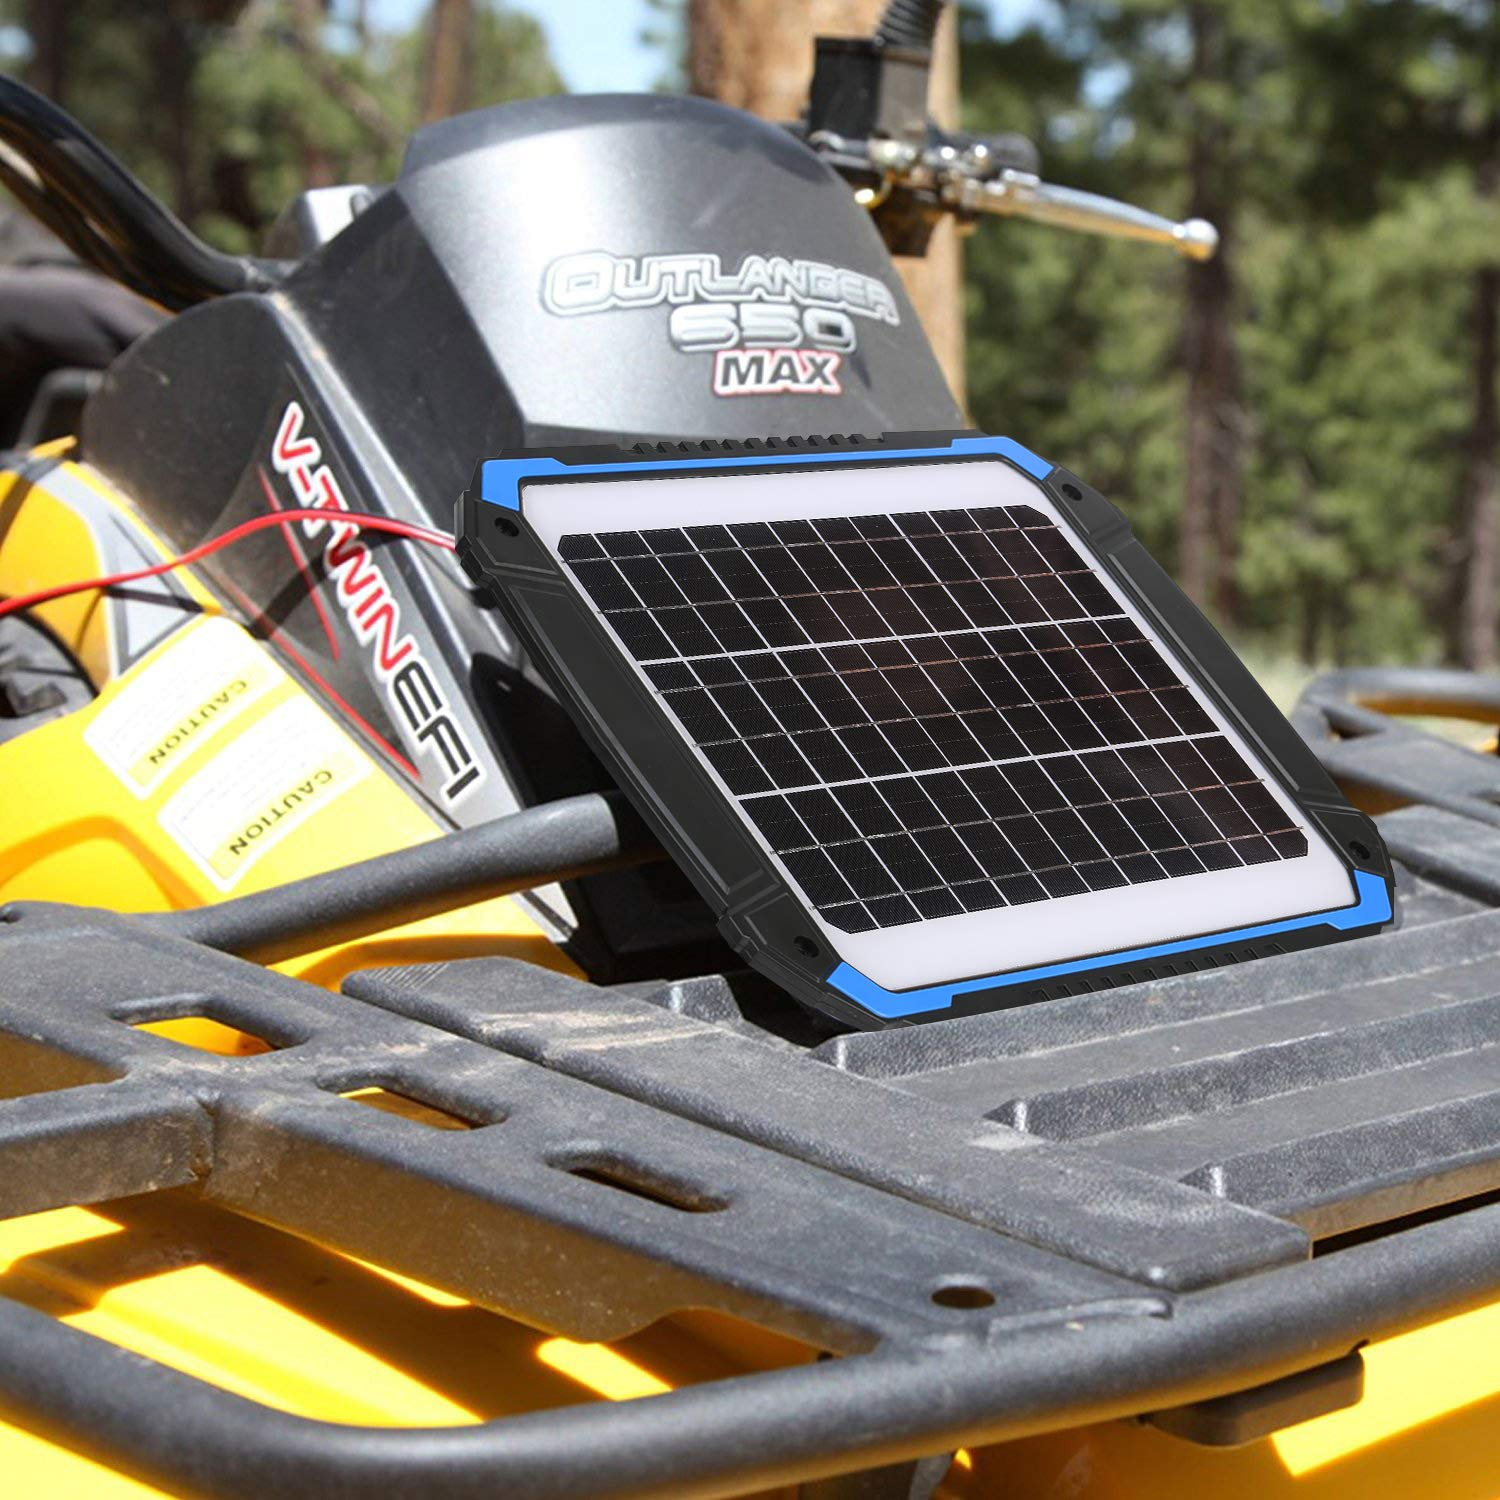 SUNER POWER 12V Solar Car Battery Charger & Maintainer - Portable 14W Solar Panel Trickle Charging Kit for Automotive, Motorcycle, Boat, Marine, RV, Trailer, Powersports, Snowmobile, etc. by SUNER POWER (Image #5)